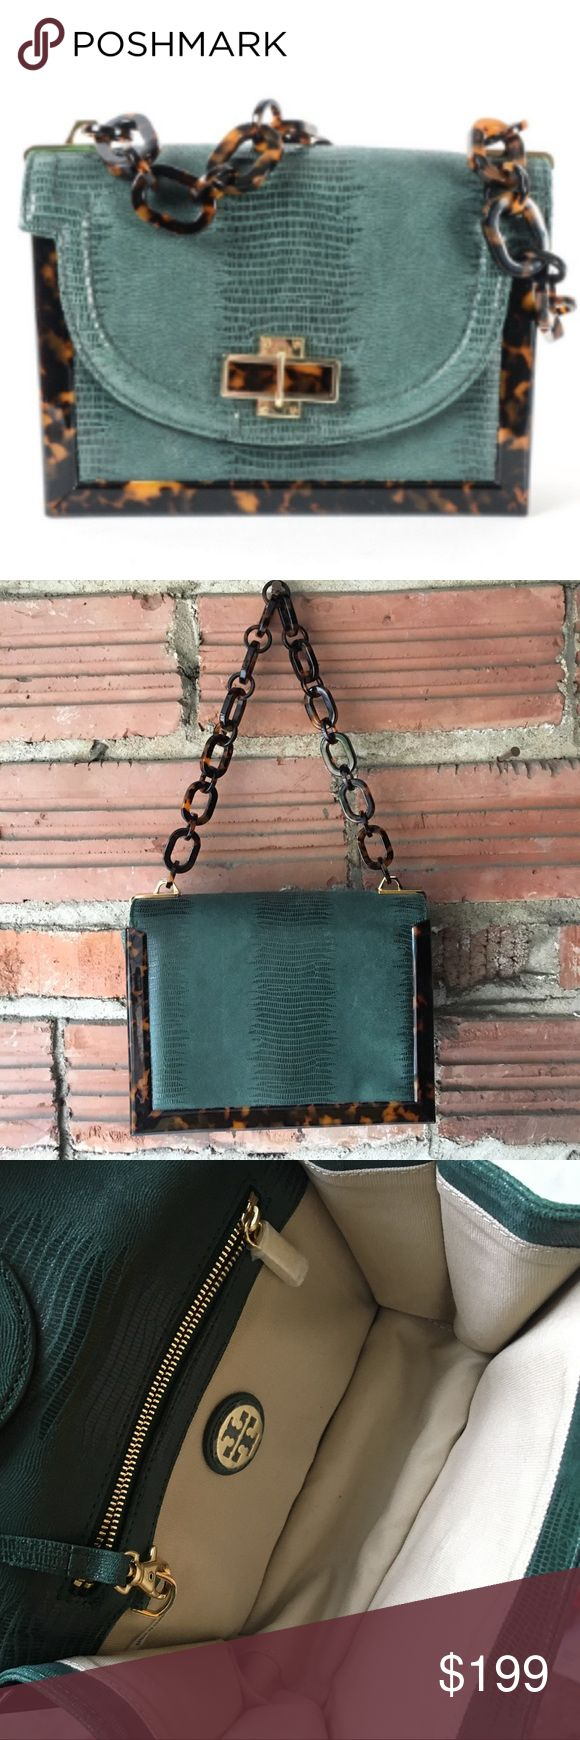 """Tory Burch bag Tory Burch """"Lizard-Embossed Small Resin Frame Bag"""" in color """"Malachite"""". Resin chain link shoulder strap is a tortoise color. Approx. 9""""W x 7""""H x 3""""D. In excellent condition, comes with original purchase receipt, packaging and dust bag. Tory Burch Bags"""